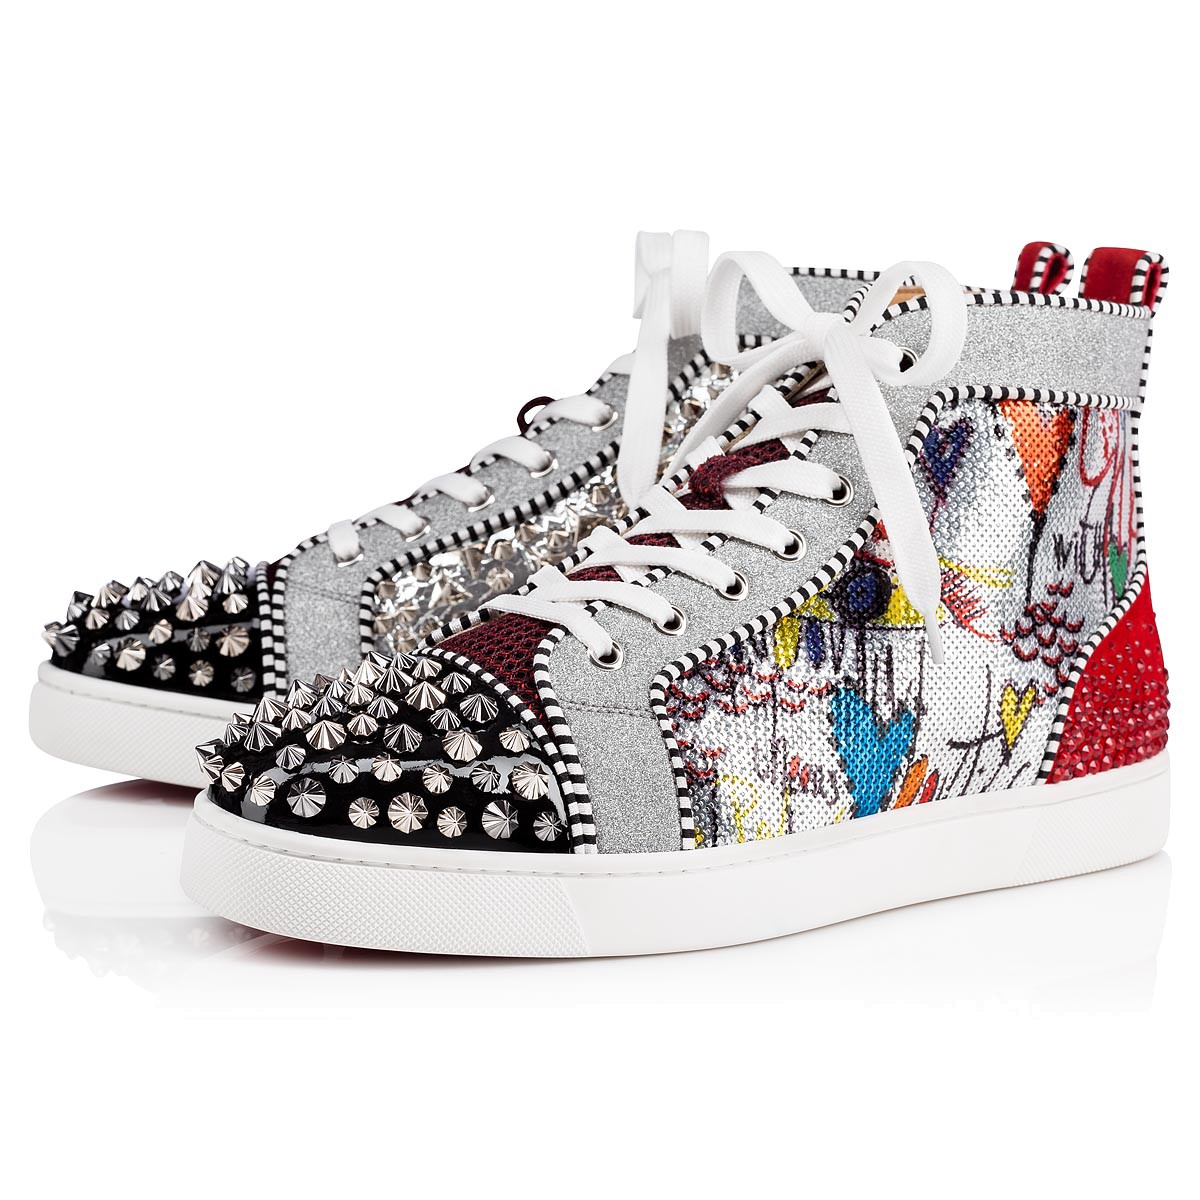 red bottom shoes for men - Christian Louboutin No Limit F18 High Top Silver  Spikes Men Shoes - red bottoms for men - red bottom sneakers US  280- ... a27aaea38